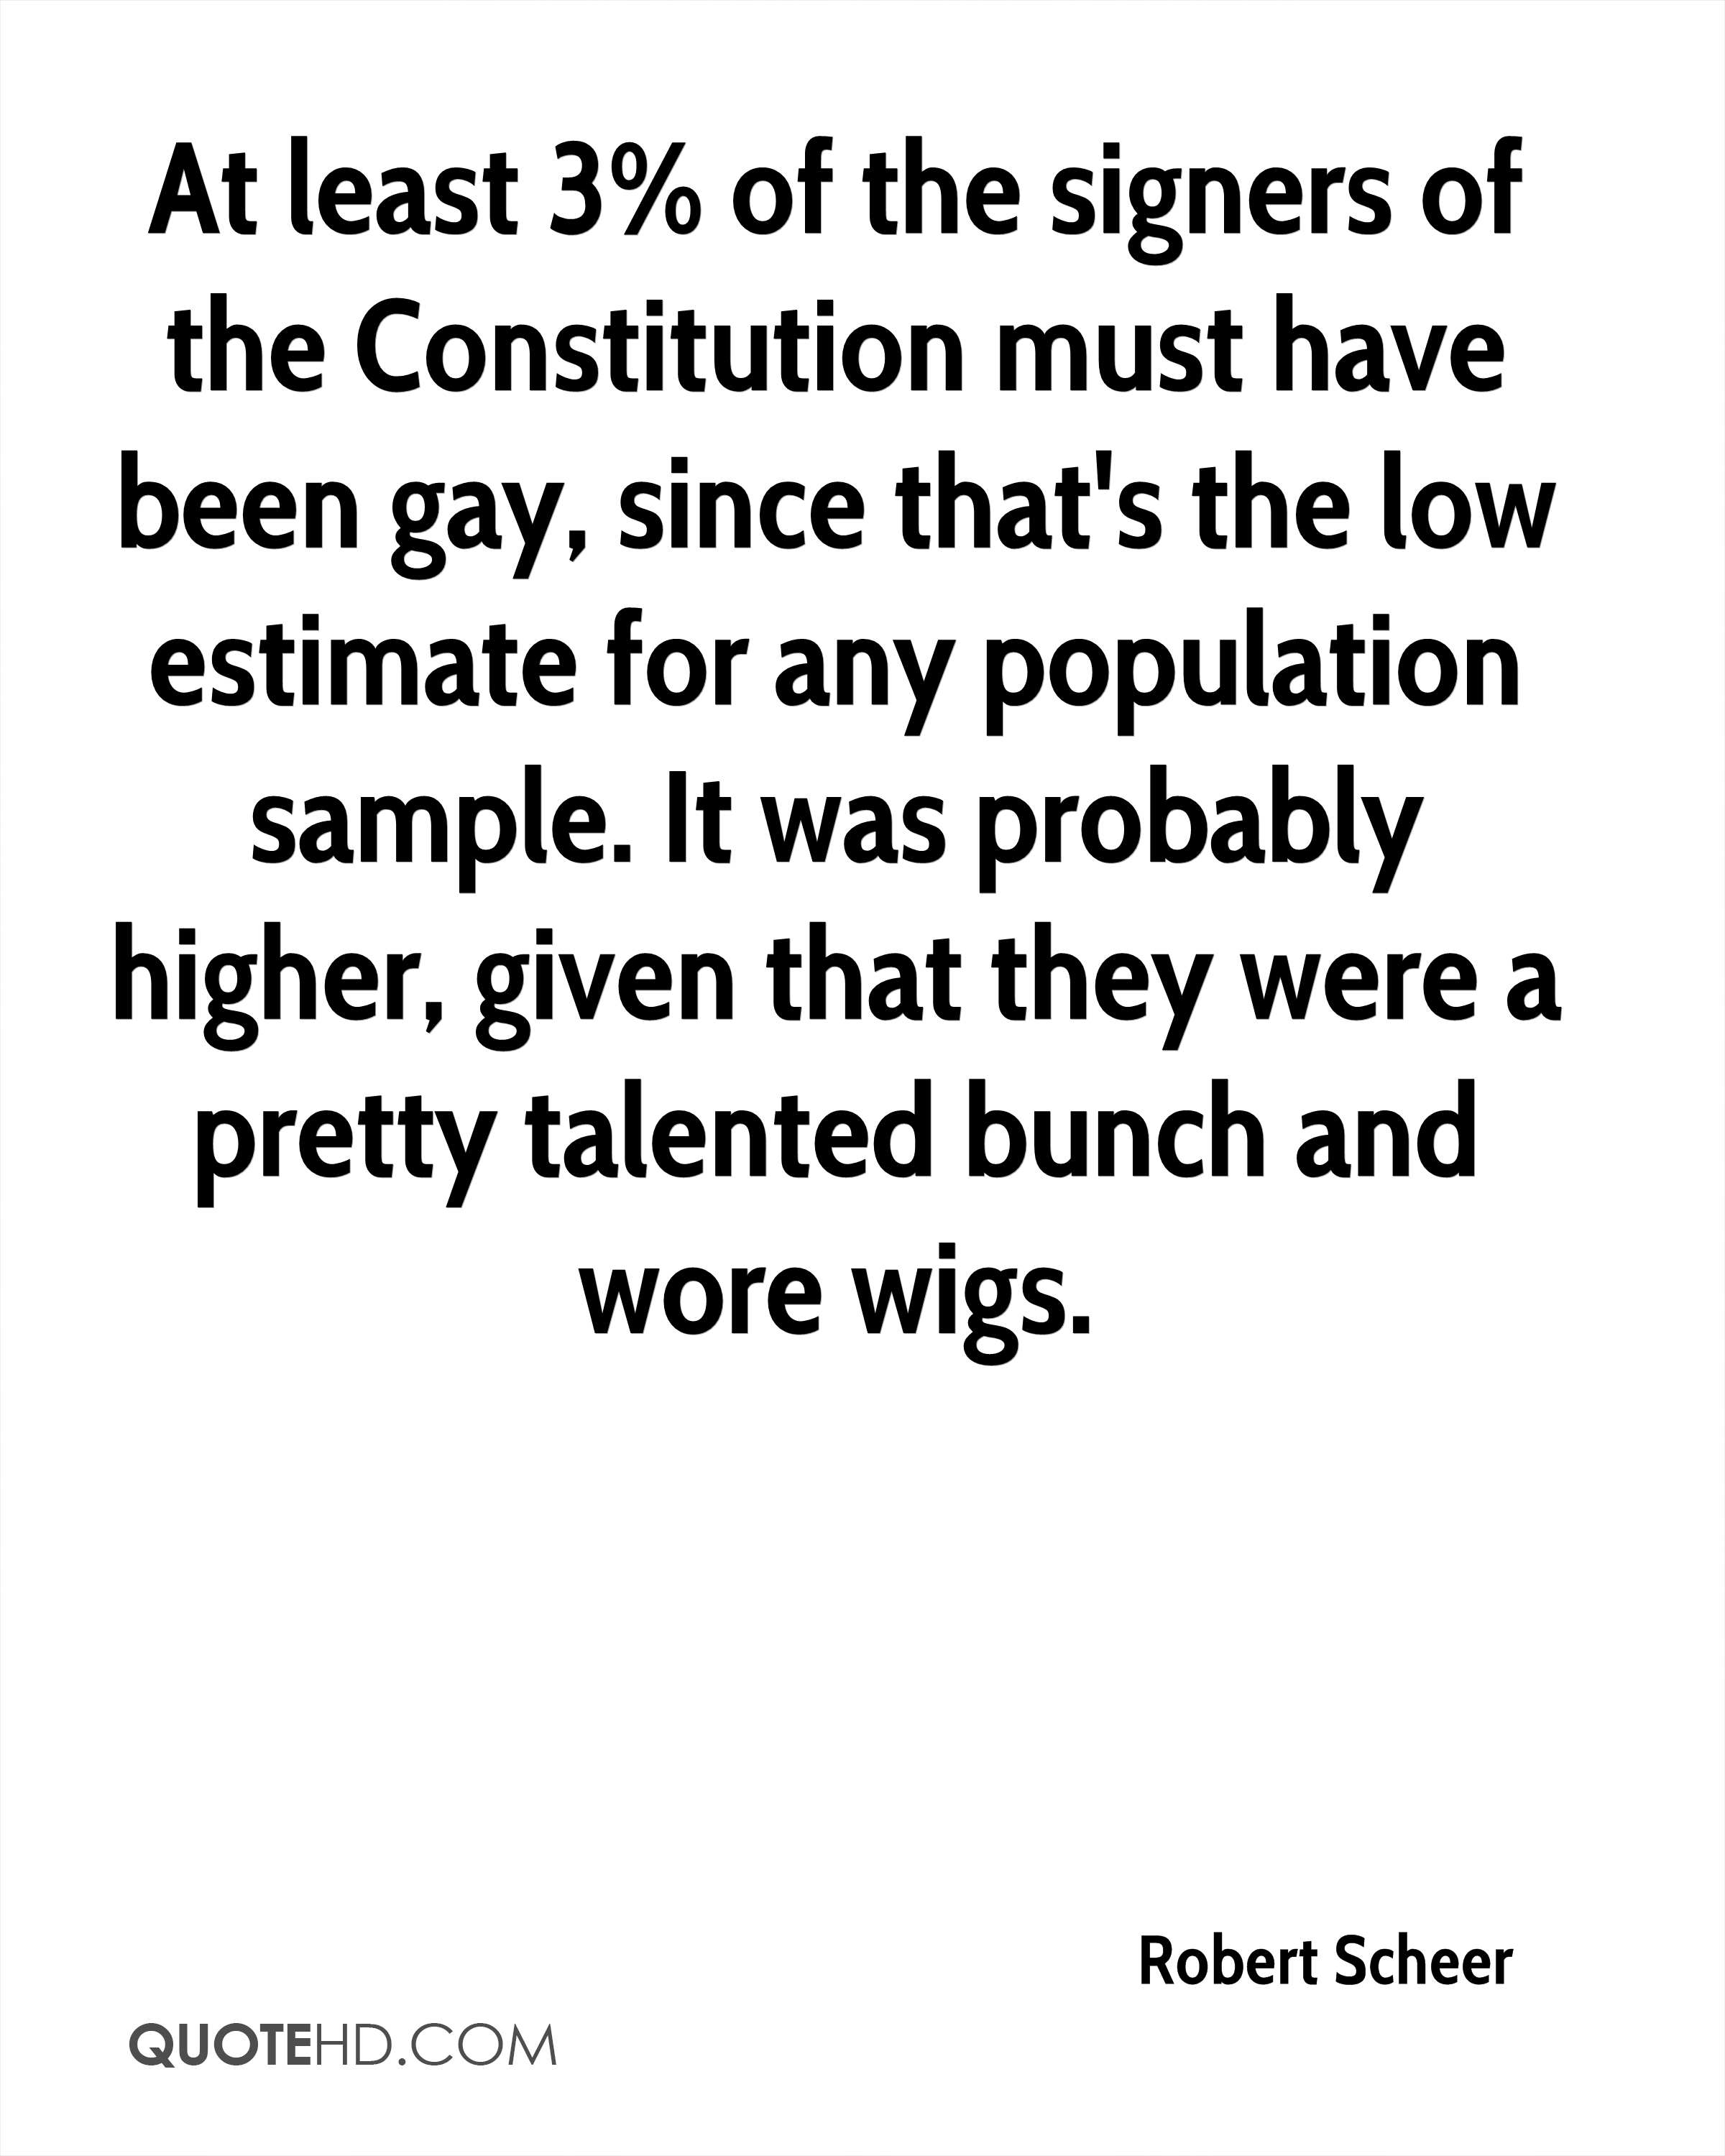 At least 3% of the signers of the Constitution must have been gay, since that's the low estimate for any population sample. It was probably higher, given that they were a pretty talented bunch and wore wigs.